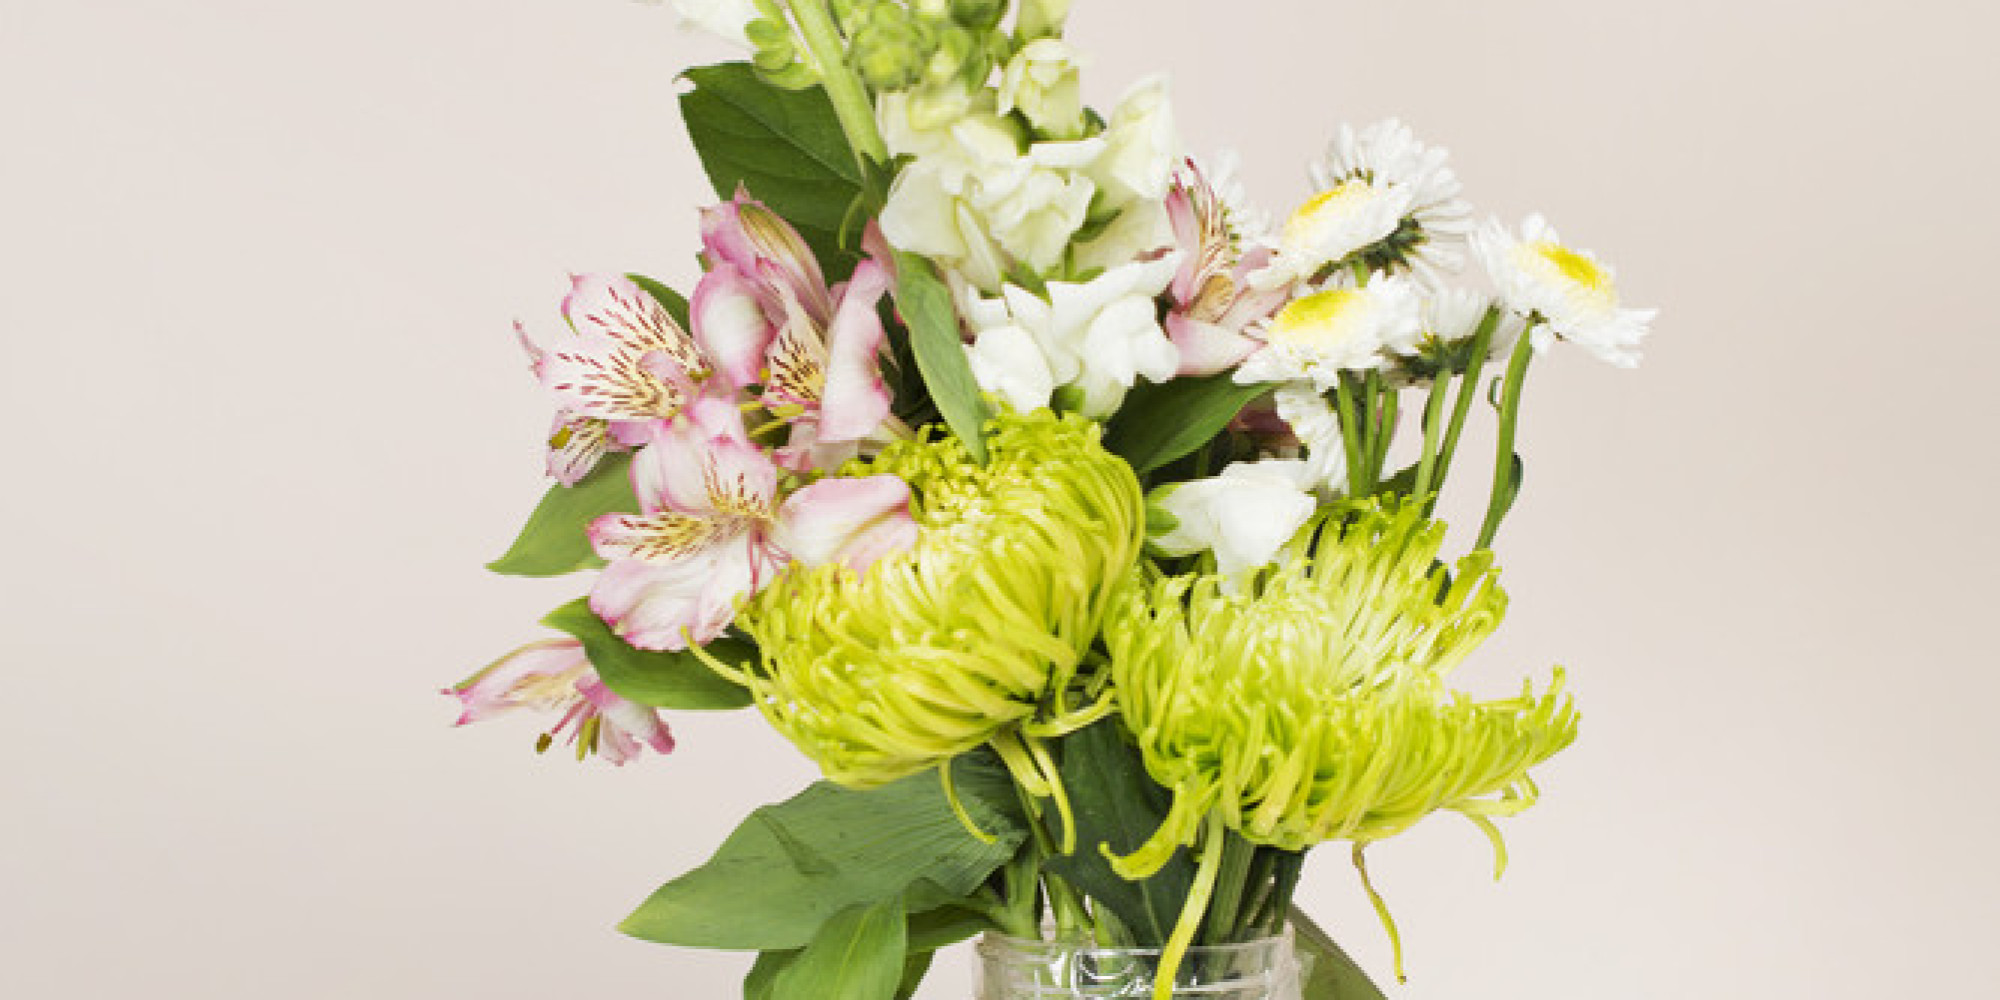 Mothers day cheap flowers latex artificial flower uu single mini pu here are ways anyone can transform cheap grocery store flowers into incredible bouquets huffpost izmirmasajfo